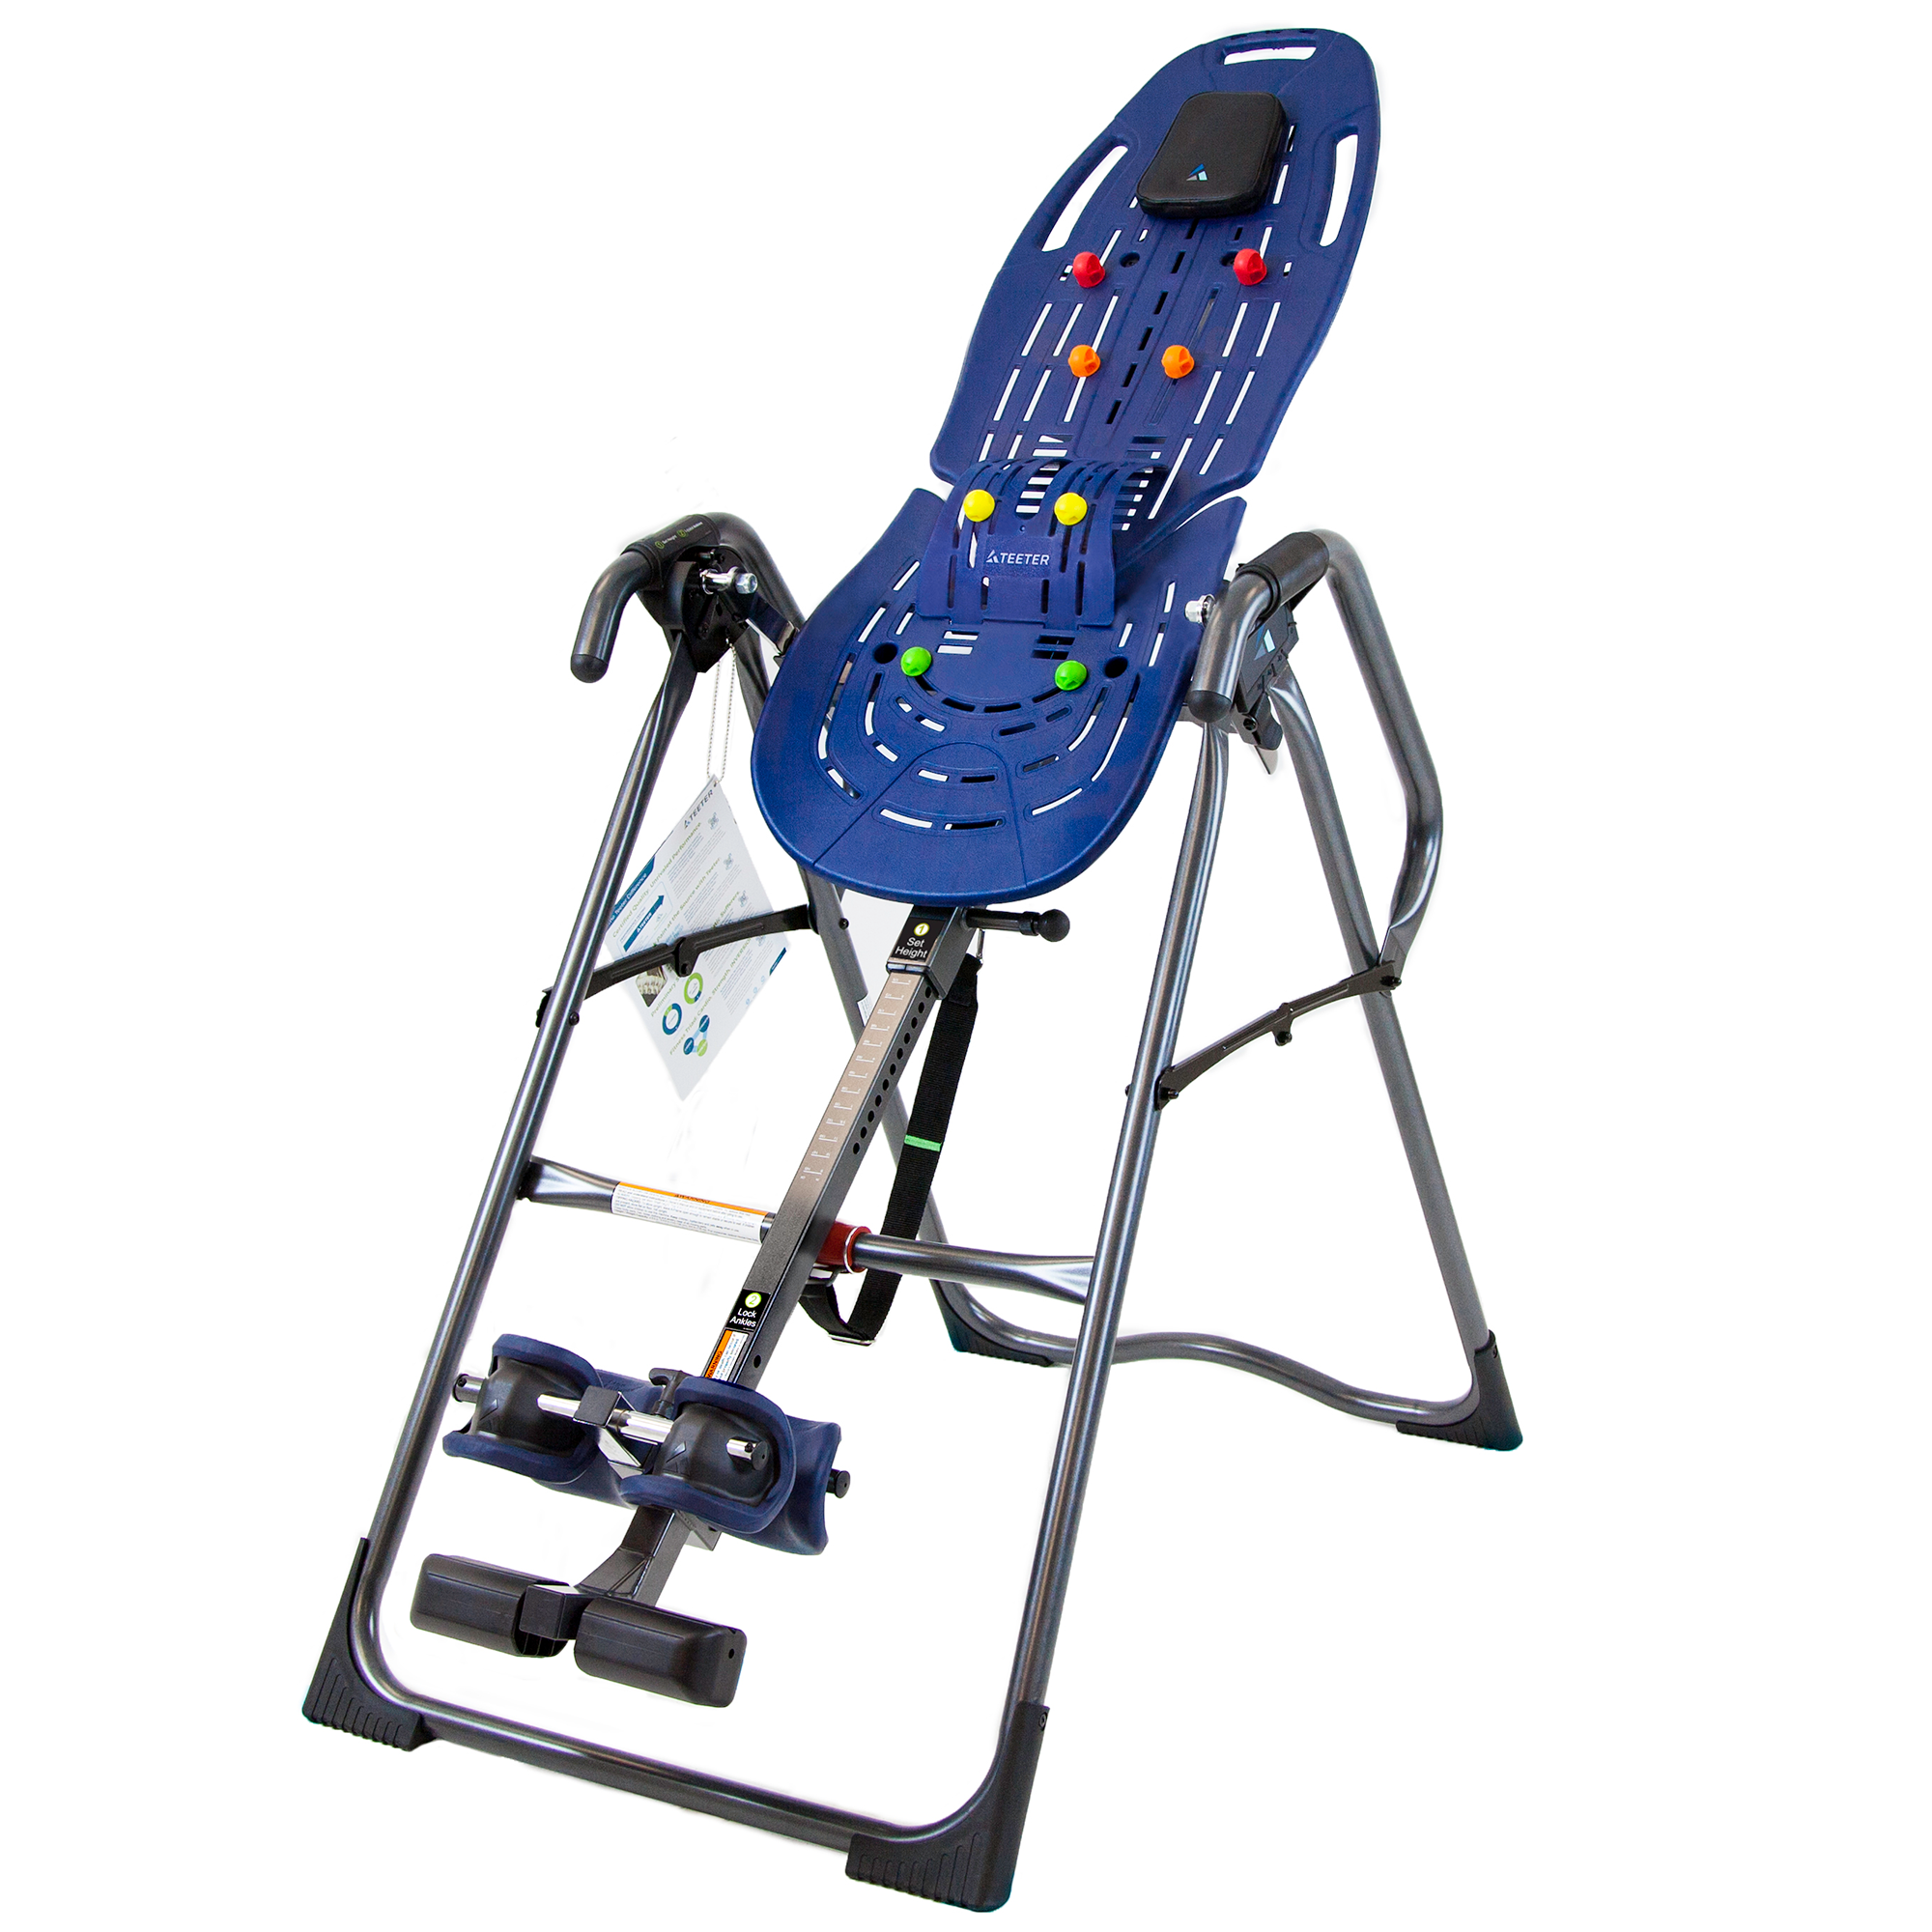 Teeter Ep 860 Ltd Inversion Table With Back Pain Relief Kit